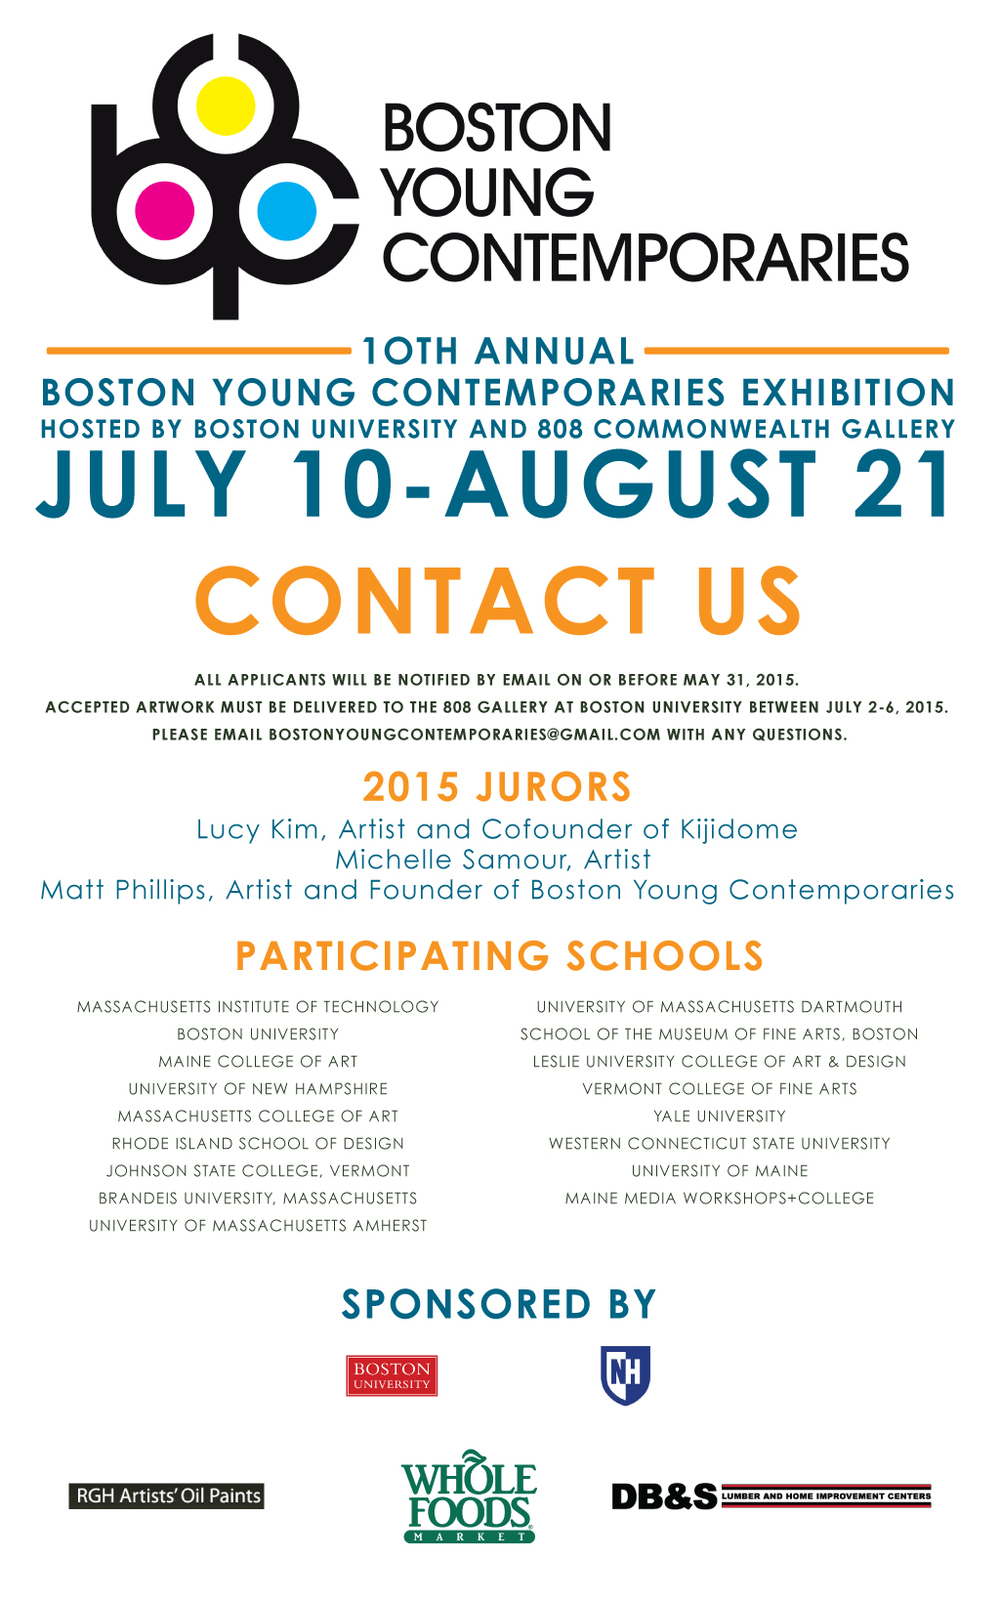 http://bostonyoungcontemporaries.net